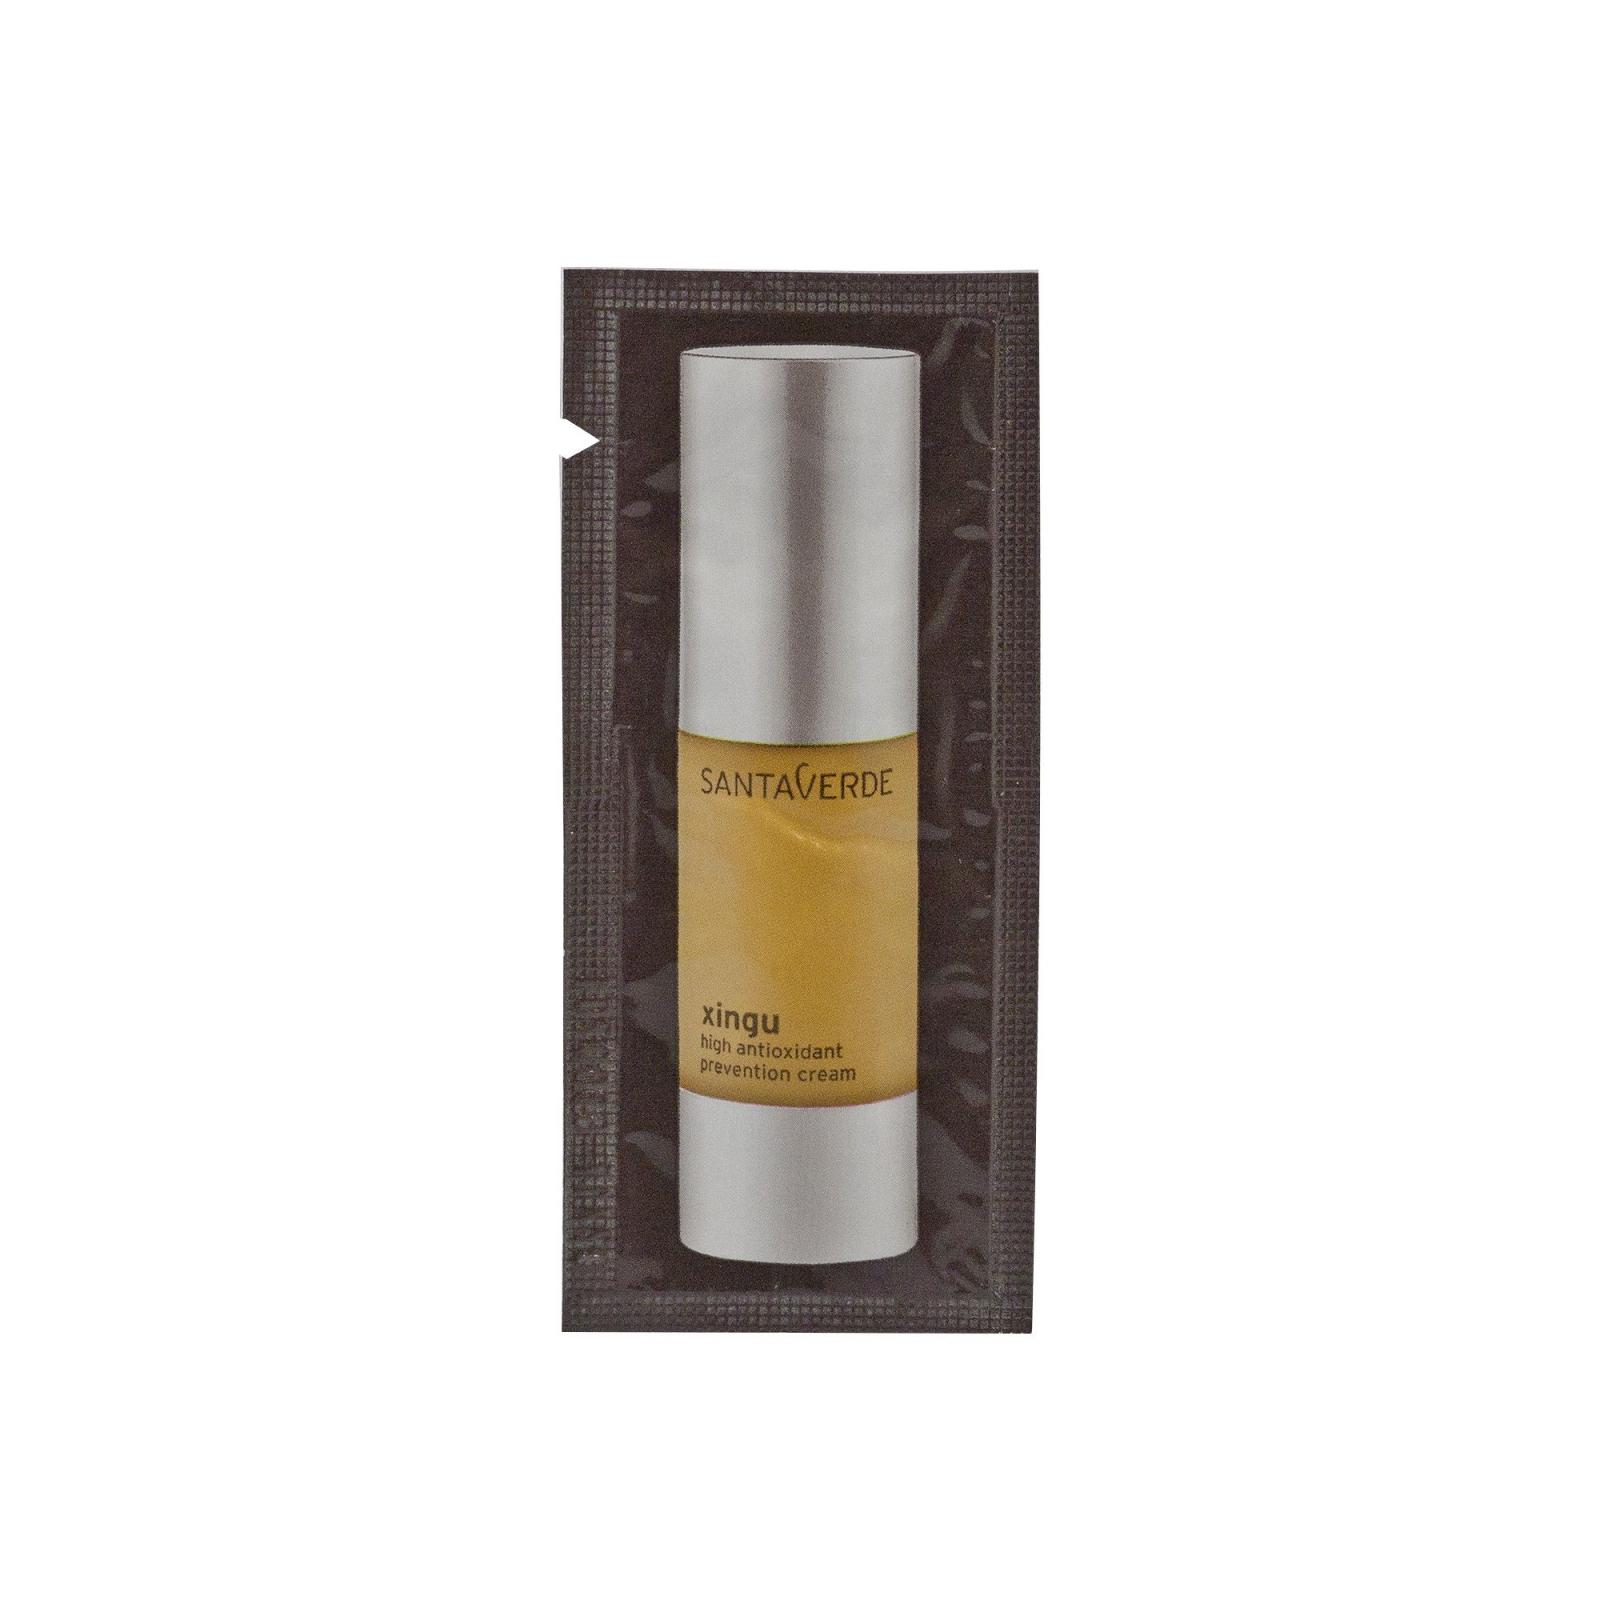 Santaverde Krém Xingu, special anti-age care 1 ml